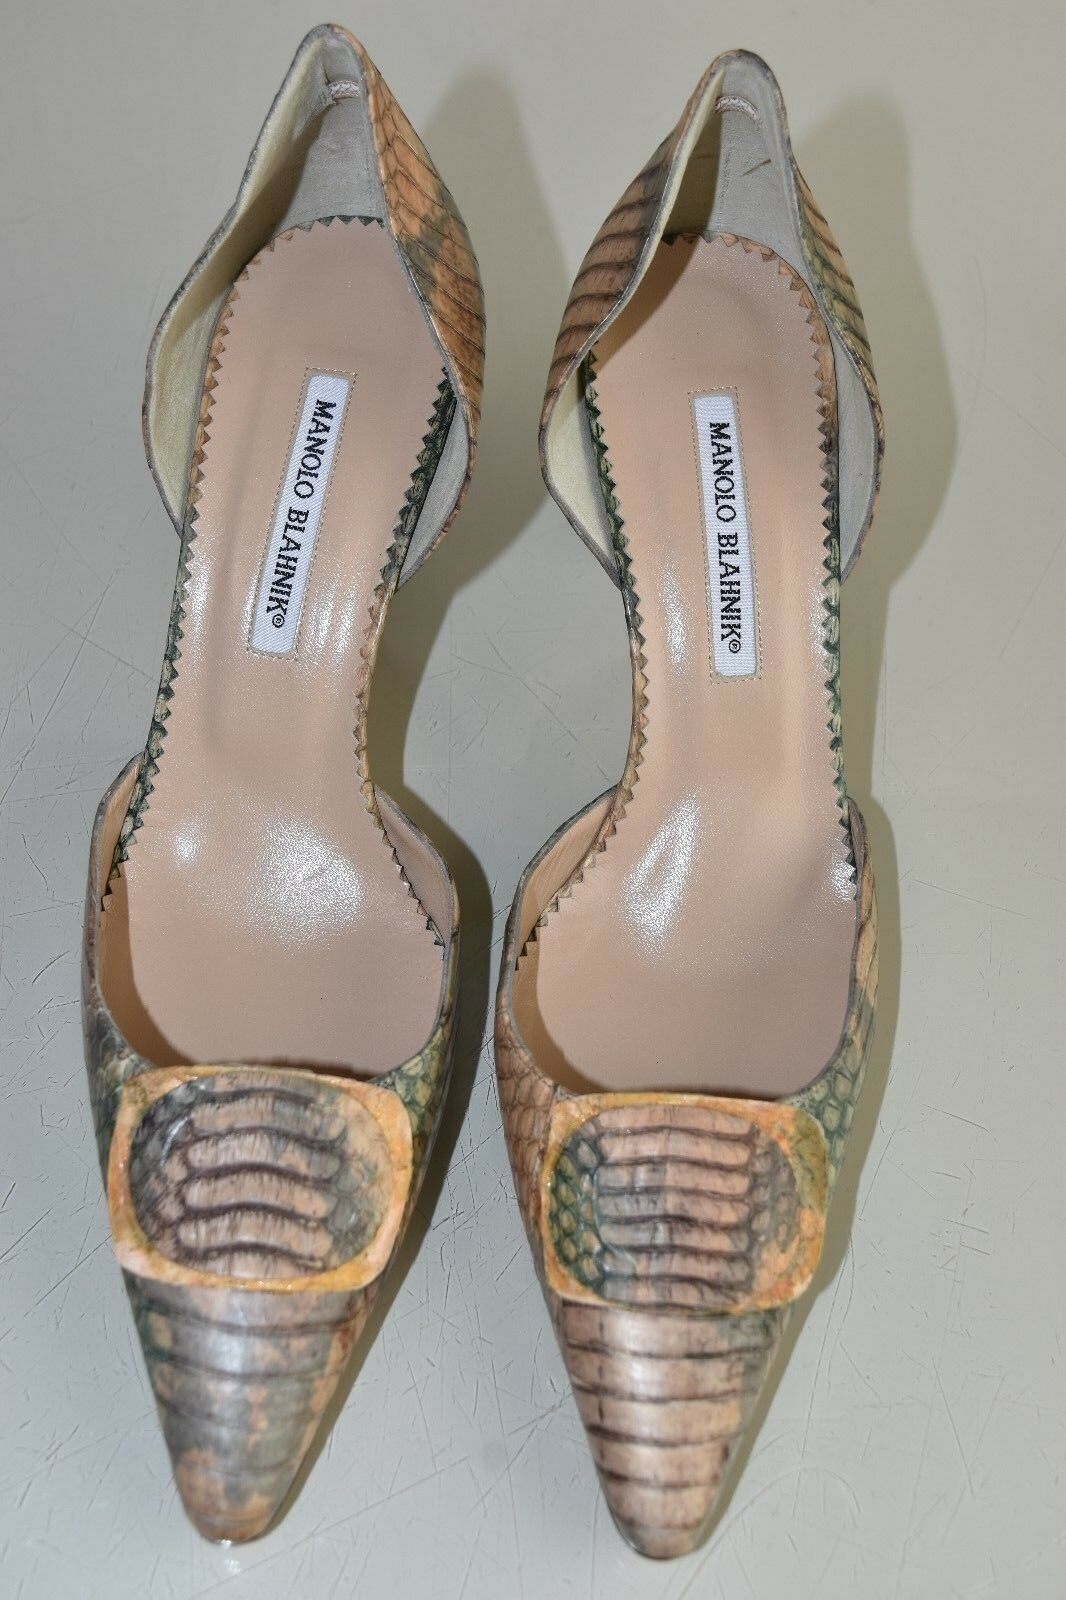 1290 NEW Manolo Blahnik EXOTIC EXOTIC EXOTIC PYTHON Pumps Dorsay marron vert Taupe chaussures 41 5050ad